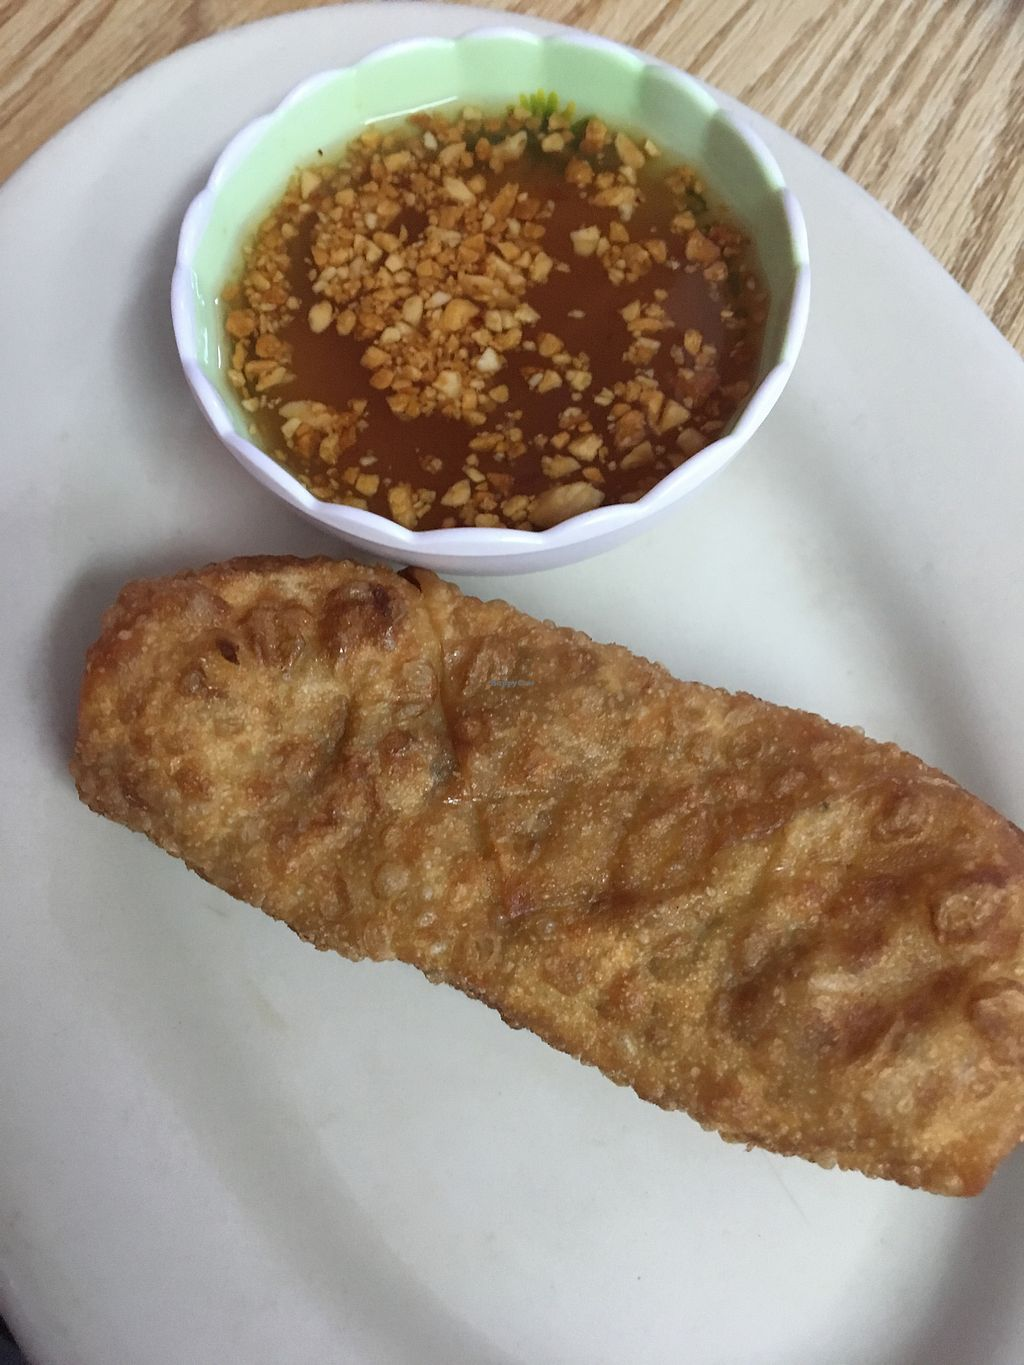 "Photo of Thai Thai Cafe   by <a href=""/members/profile/StephanieWilson"">StephanieWilson</a> <br/>Vegan egg roll <br/> May 19, 2018  - <a href='/contact/abuse/image/77977/402052'>Report</a>"